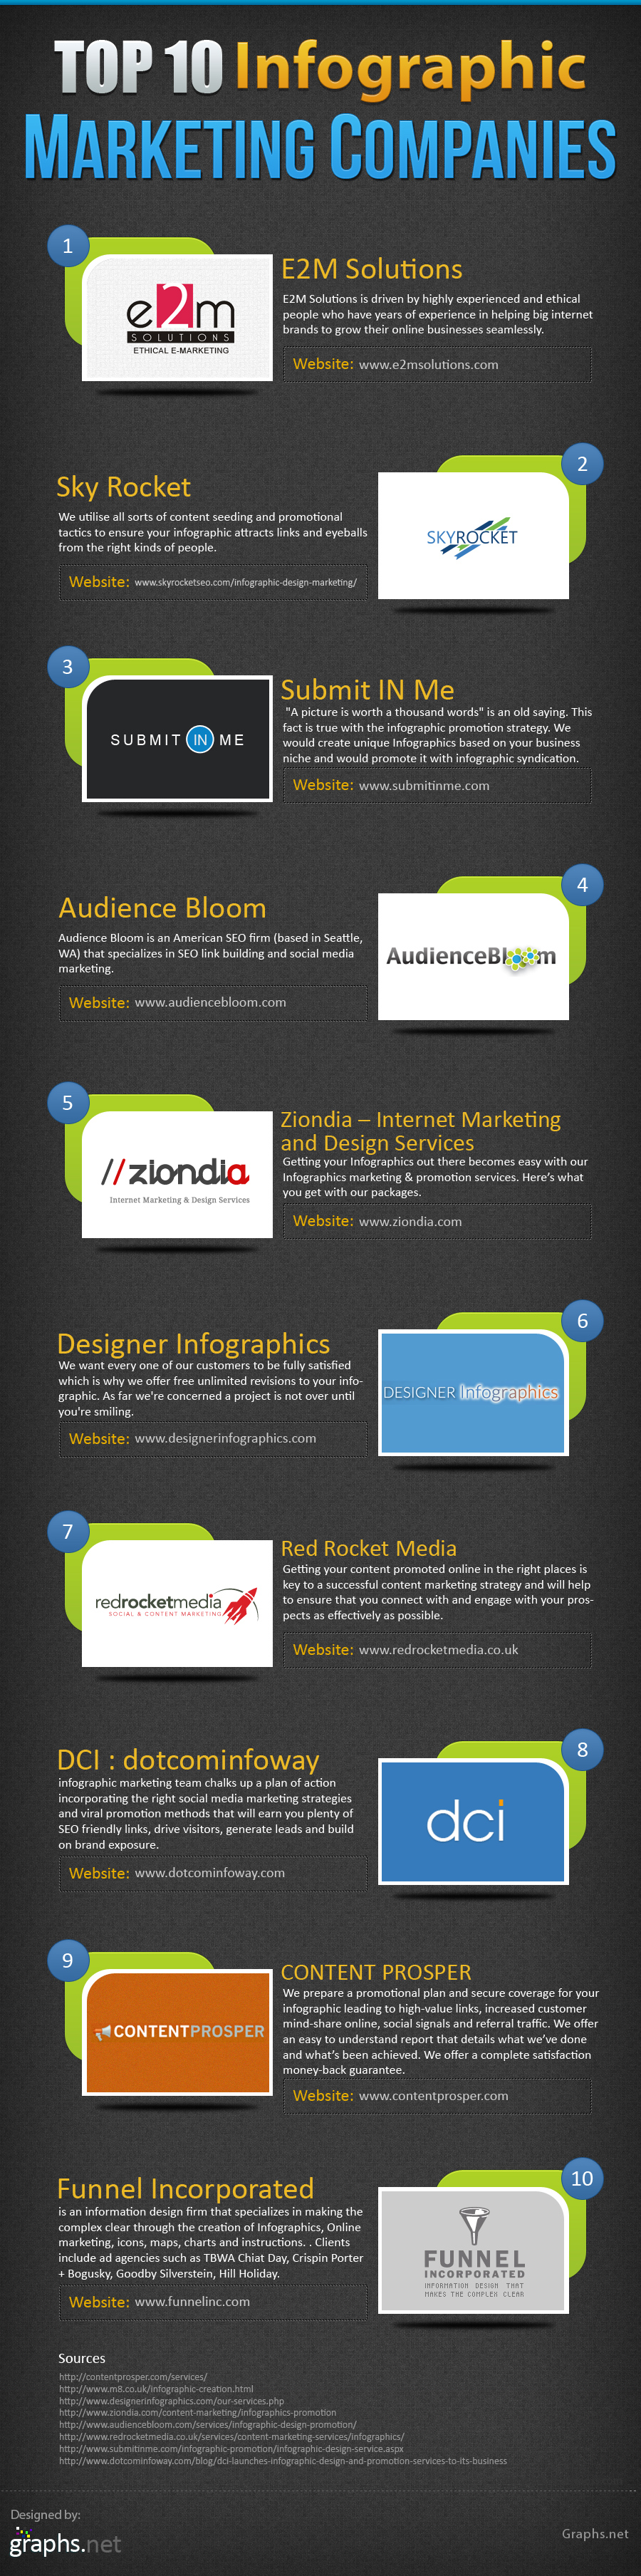 Top 10 Infographic Marketing Companies